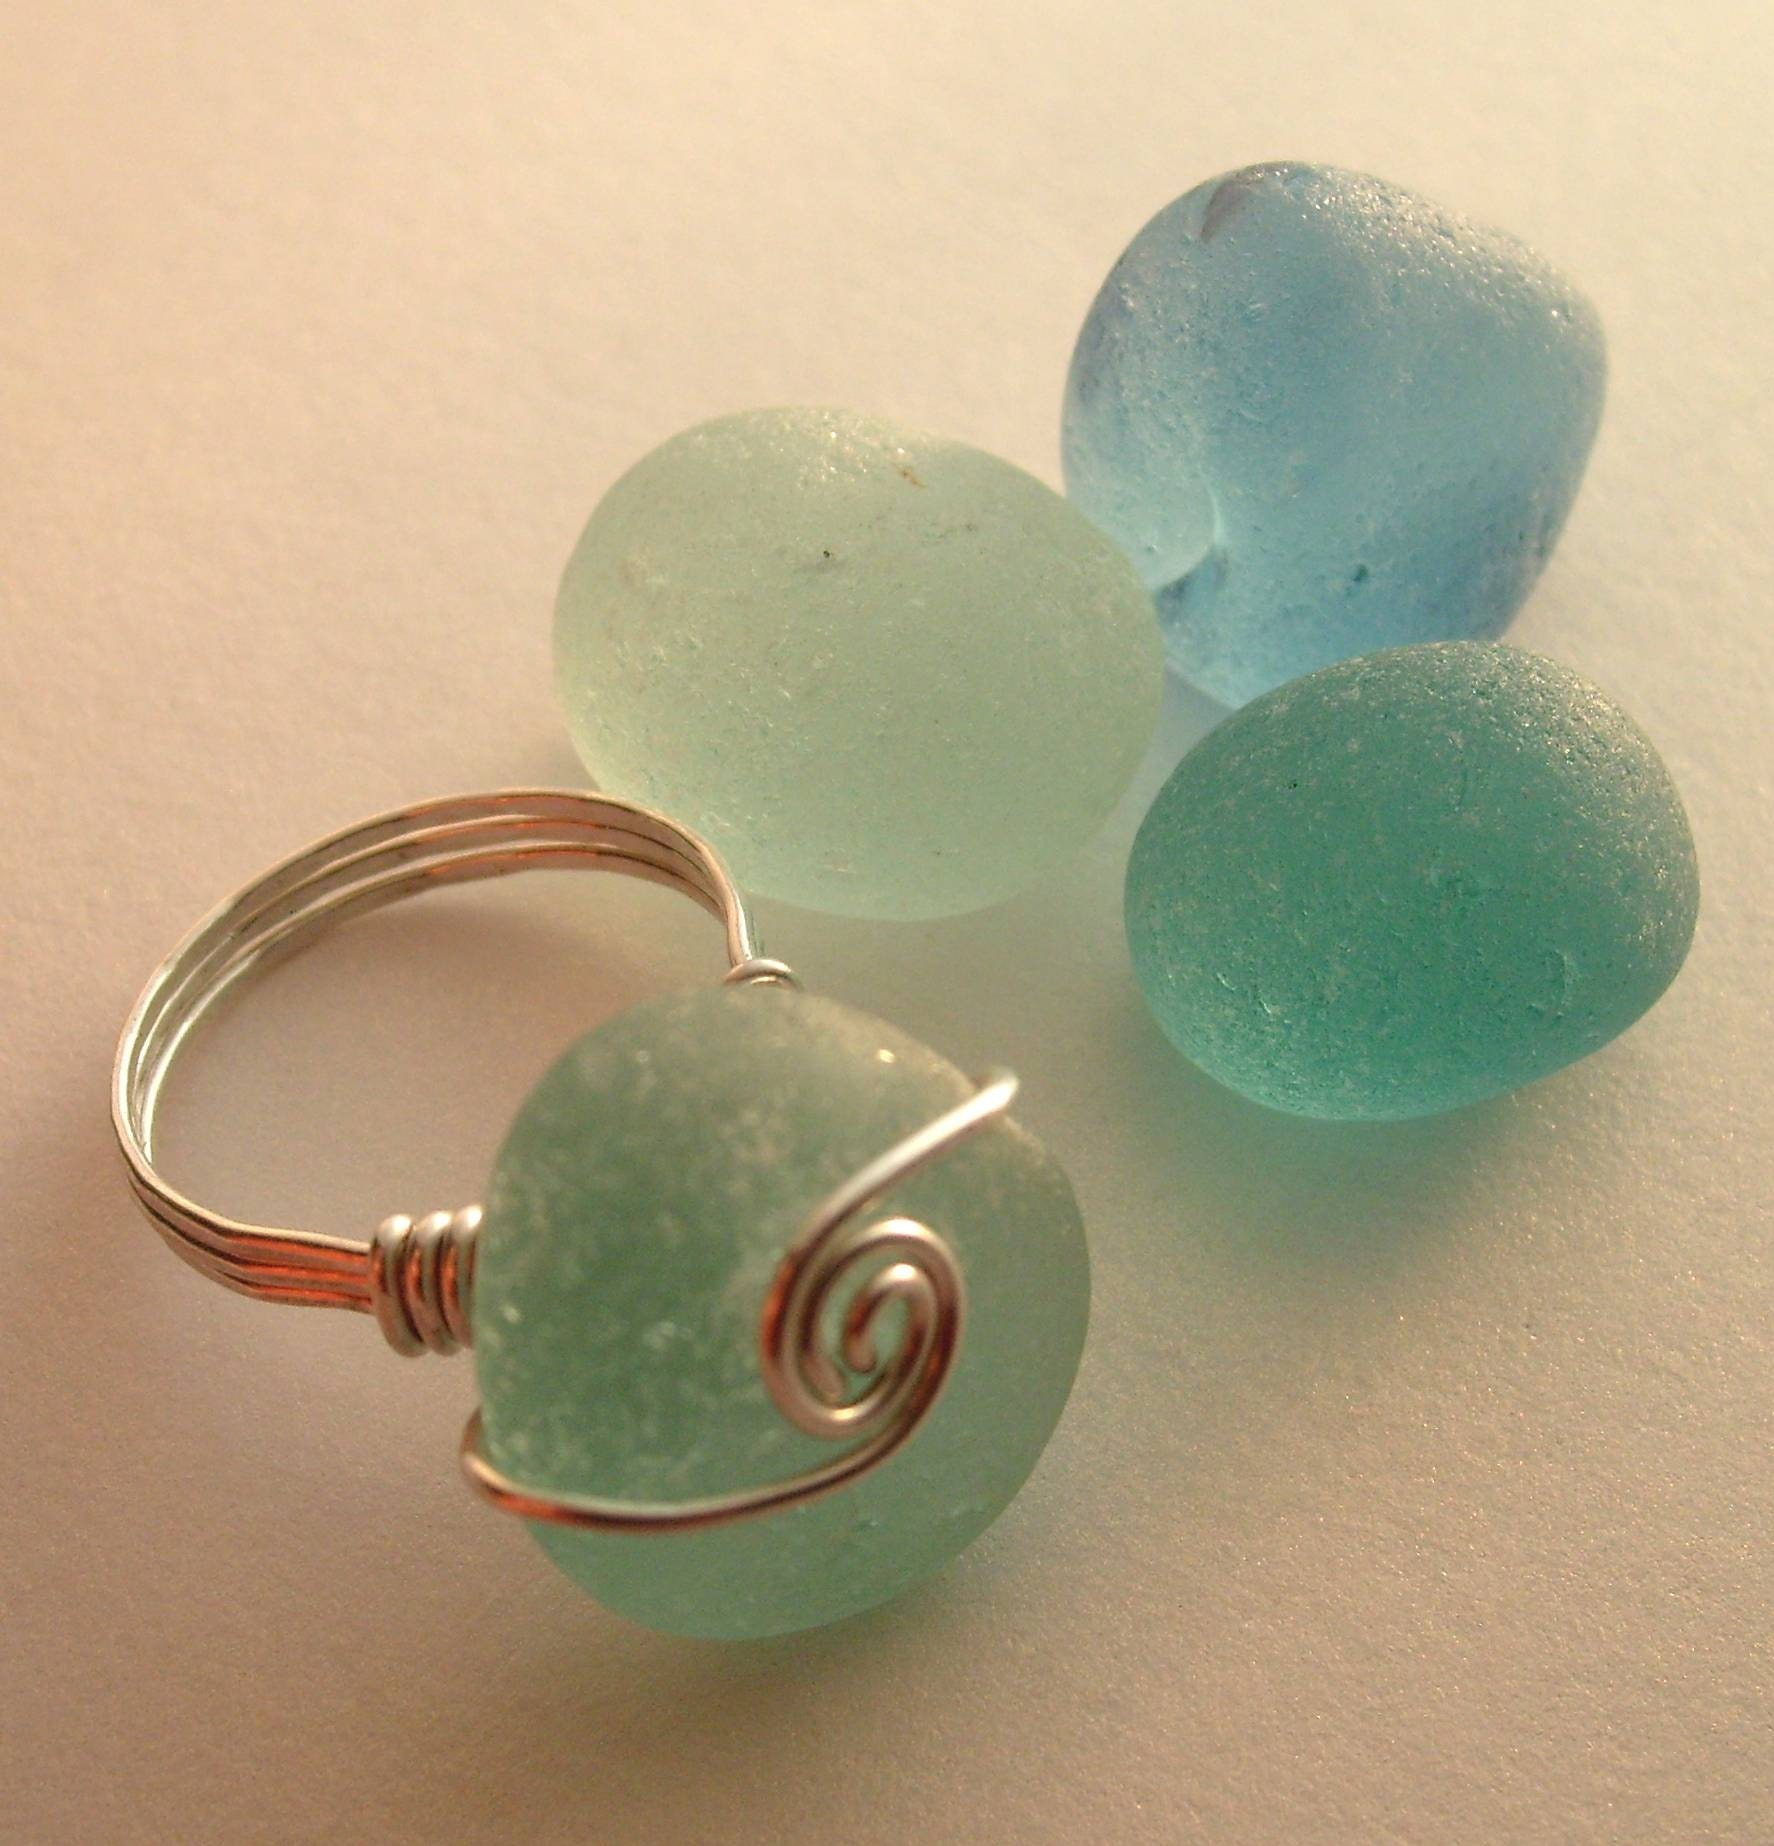 ELLE Genuine Sea Glass Sculpted Wire Ring Size 7 by Lake Erie Beach Glass LEbg